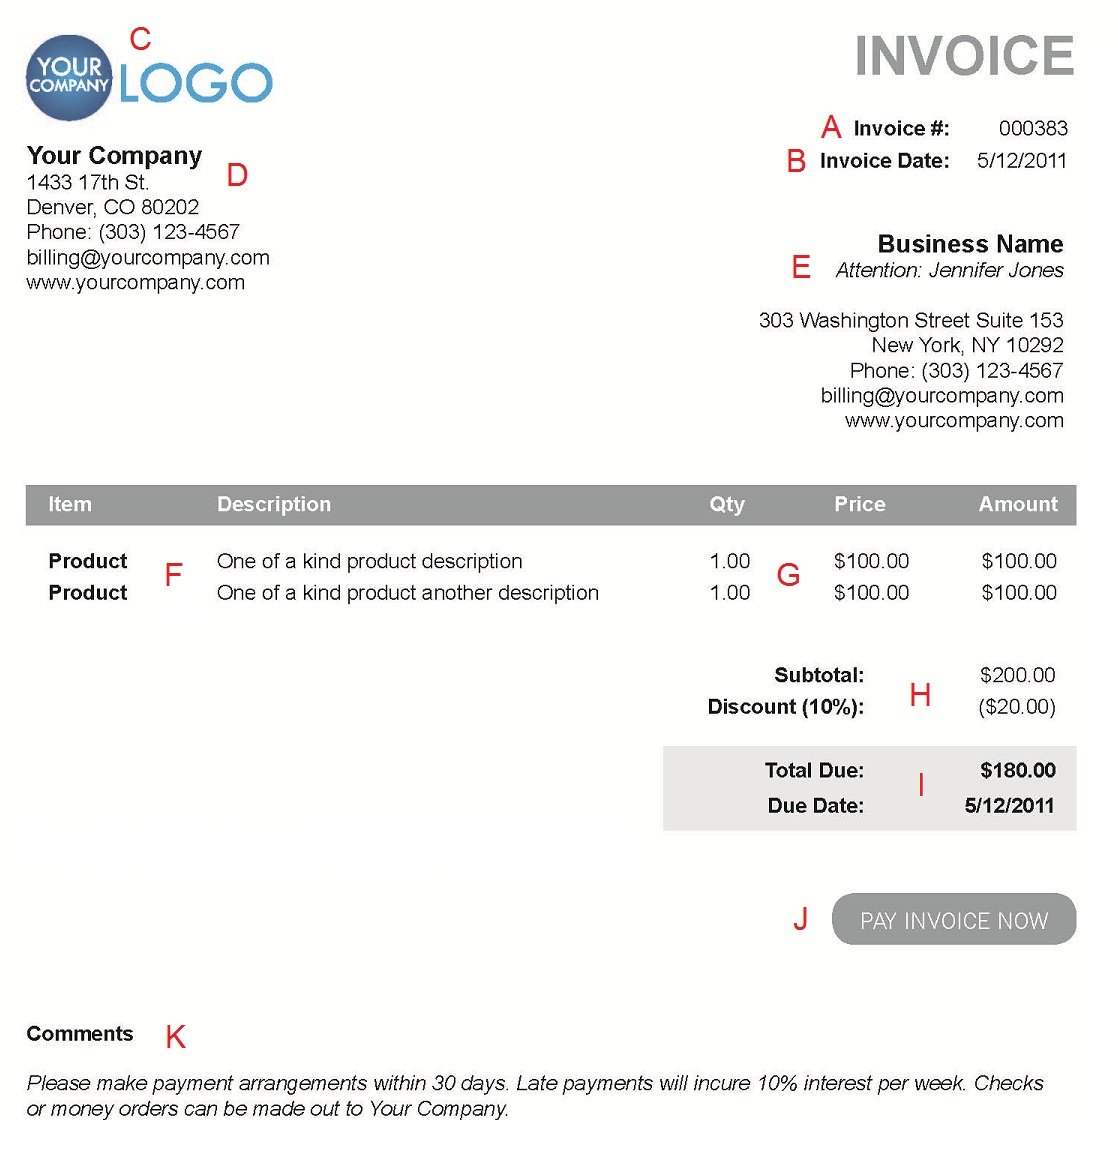 Bringjacobolivierhomeus  Unusual The  Different Sections Of An Electronic Payment Invoice With Fascinating A  With Nice Msrp Invoice Price Difference Also Personal Invoice In Addition Performa Invoice Meaning And Invoice Tracker App As Well As Uses Of Invoice Additionally Vintage Invoice From Paysimplecom With Bringjacobolivierhomeus  Fascinating The  Different Sections Of An Electronic Payment Invoice With Nice A  And Unusual Msrp Invoice Price Difference Also Personal Invoice In Addition Performa Invoice Meaning From Paysimplecom